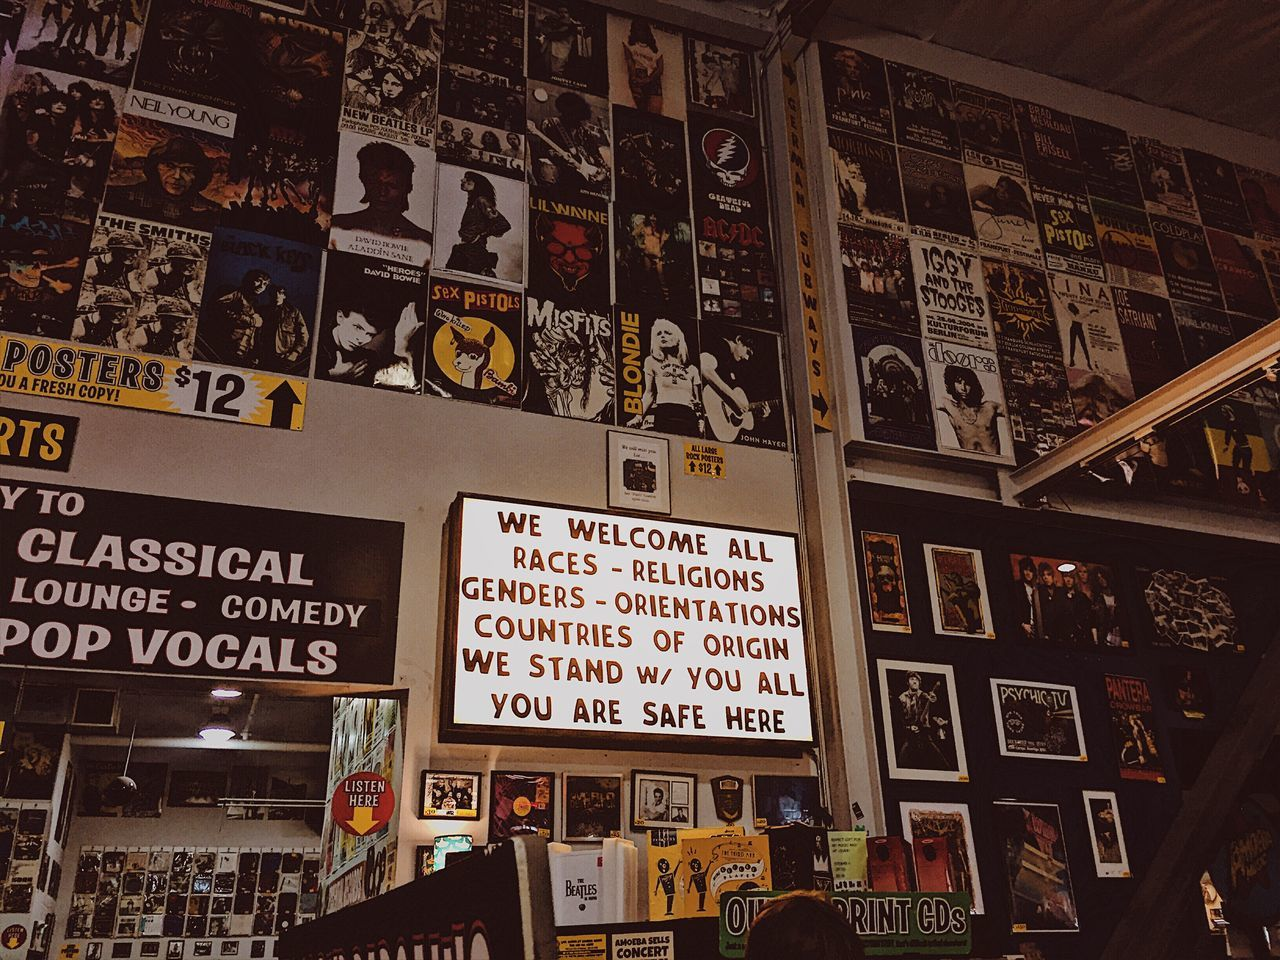 Travel Destinations Musician Musical Sunset Boulevard Hollywood Los Angeles, California Rock And Roll Music Vintage Interior Design Fun Records Record Store Vibes Free Spirit Freedom Neon Sign Vintage Shopping